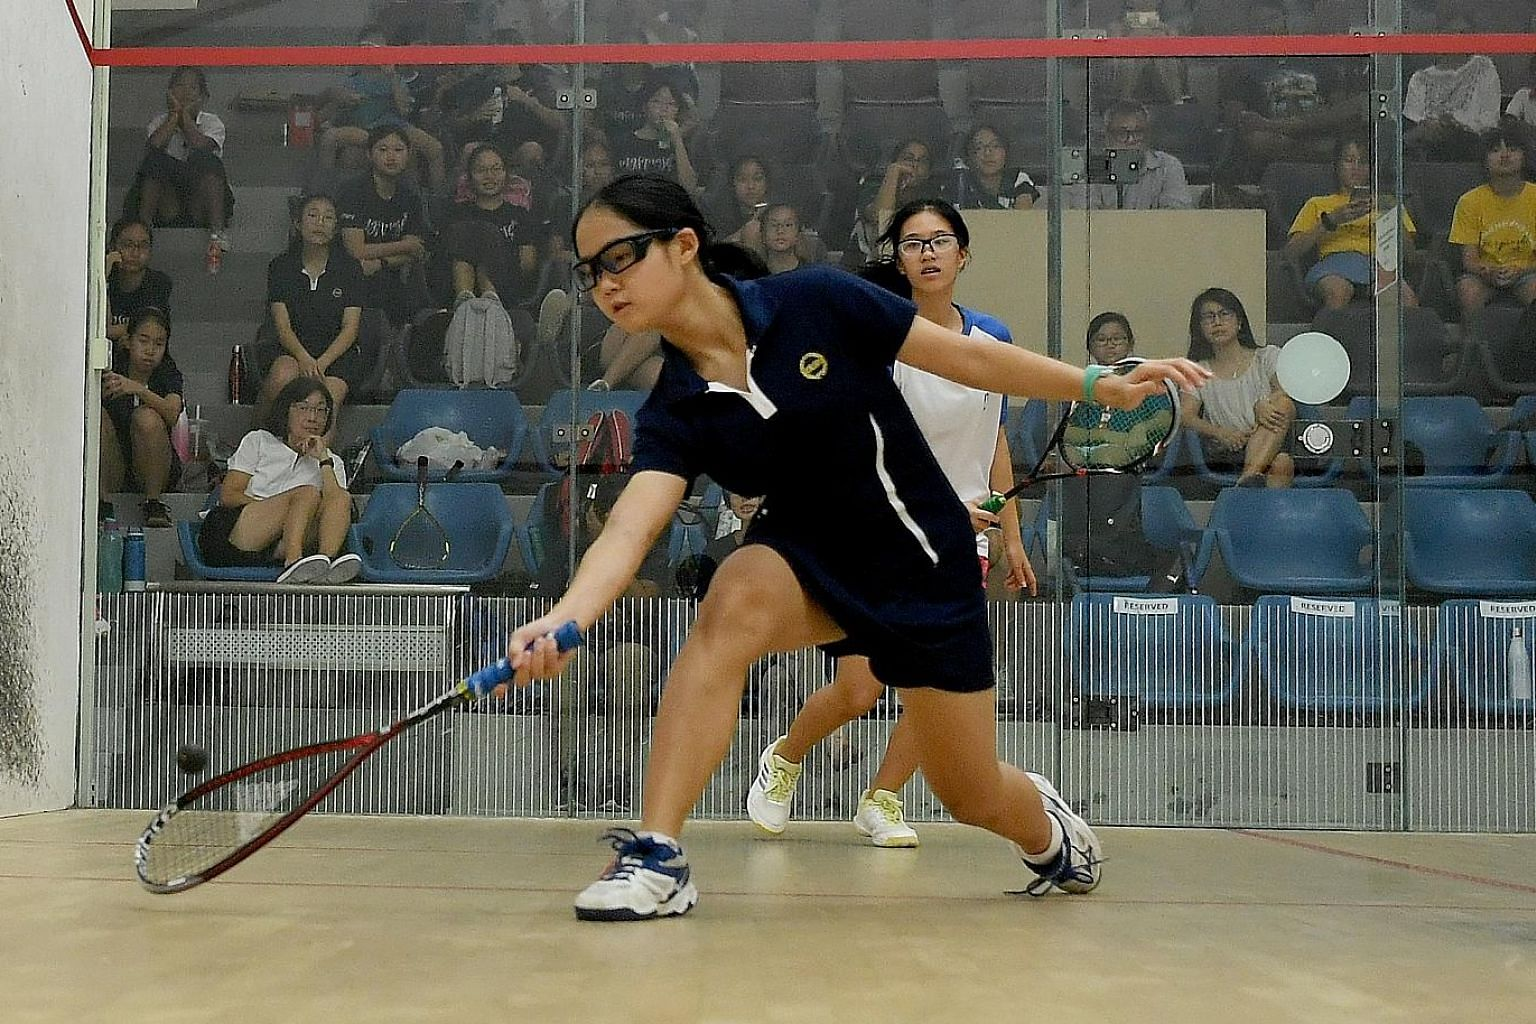 Methodist Girls' School's Gracia Chua (in blue) hitting a return during her win over National Junior College's Ong Rui En in the C Division squash final at Kallang Squash Centre. ST PHOTO: KHALID BABA